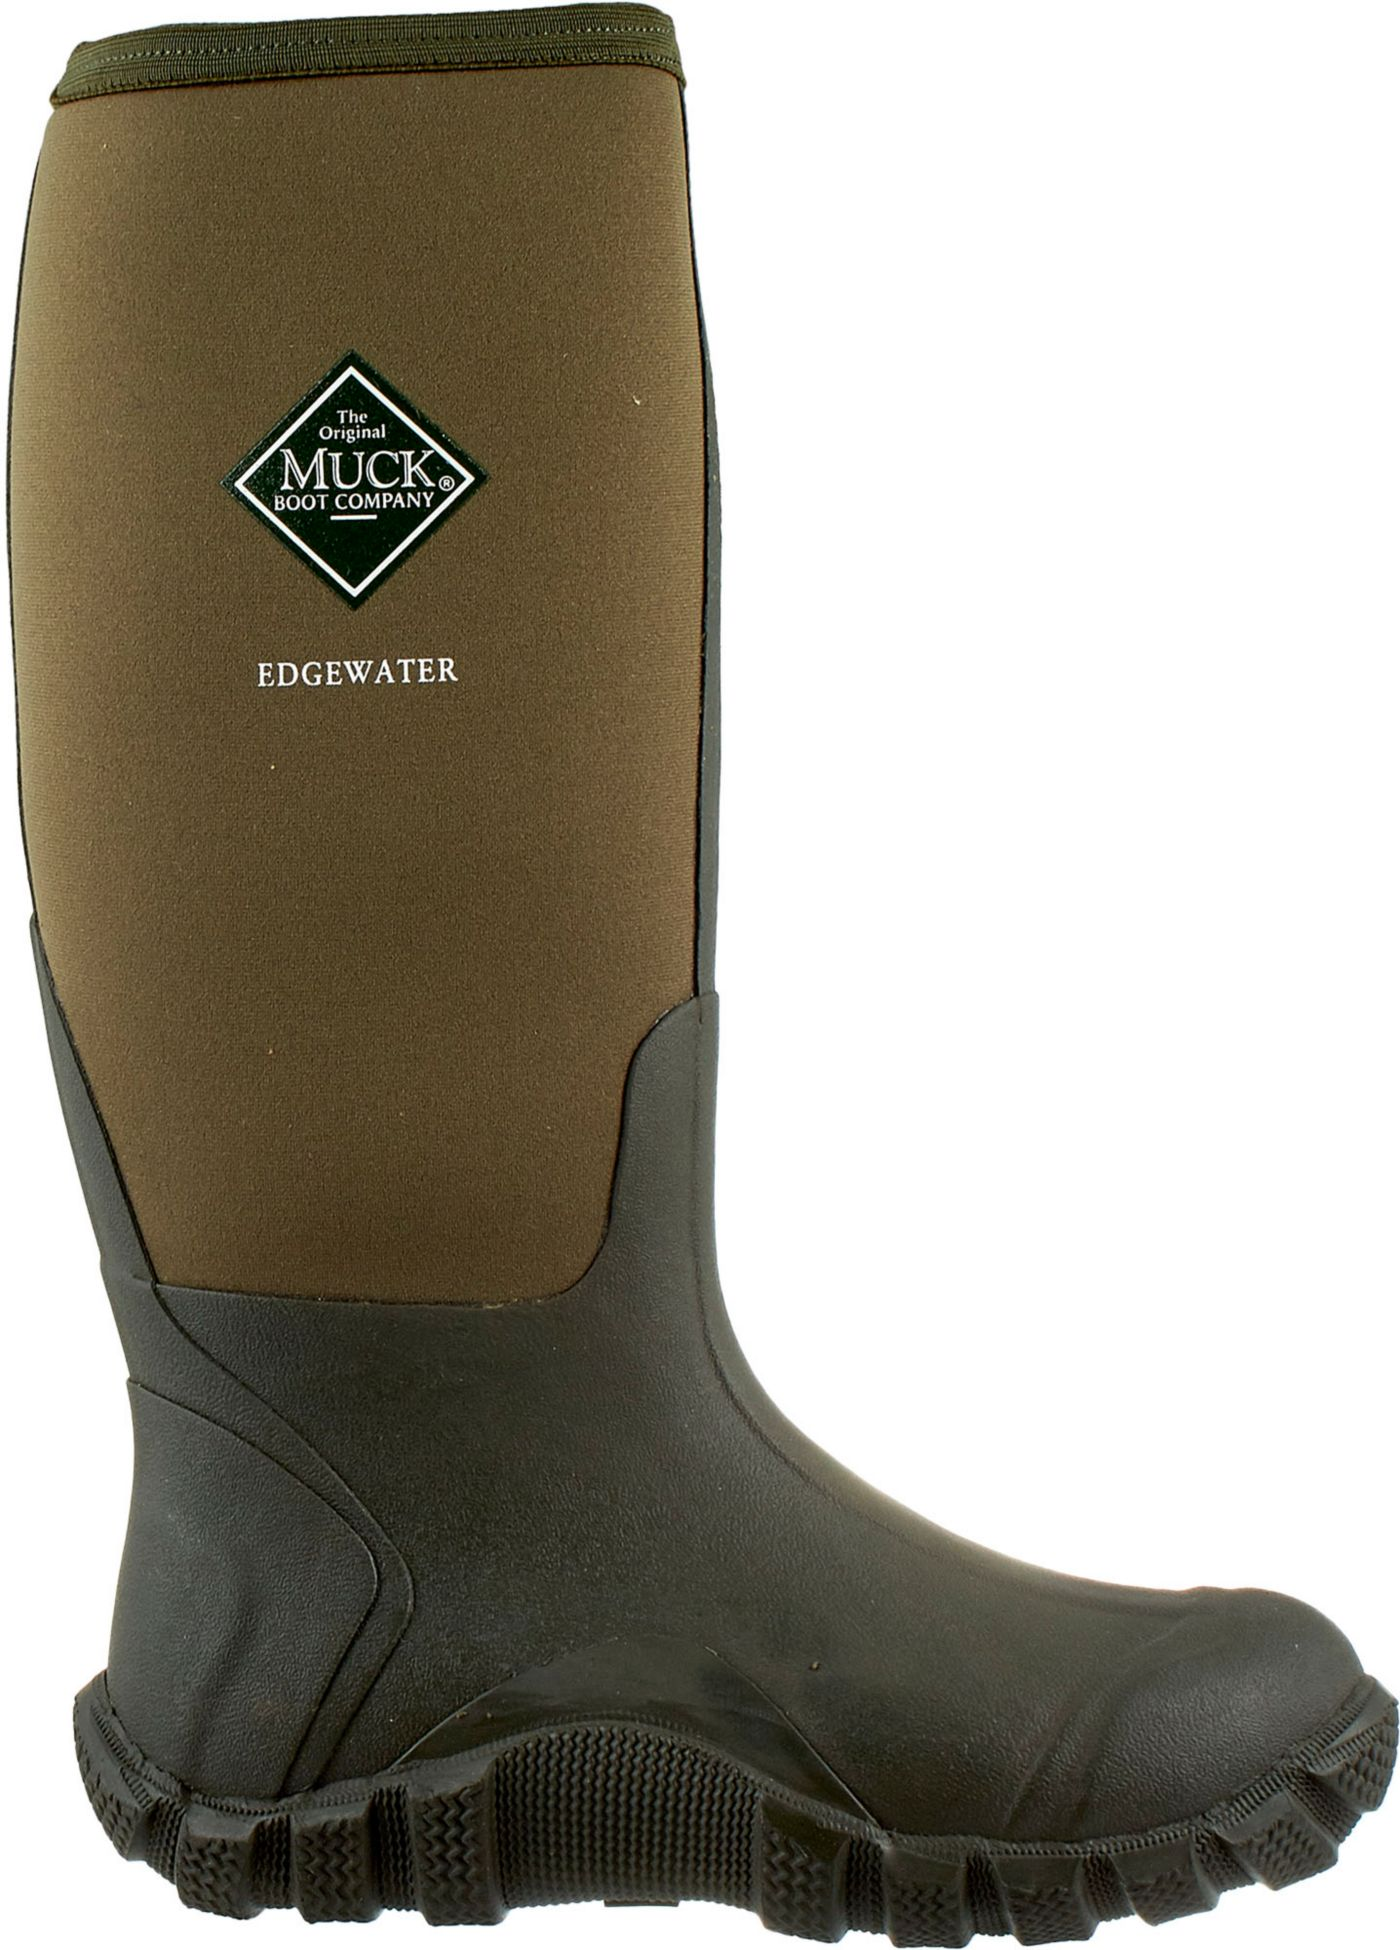 Muck Boots Men's Edgewater Sport Rubber Hunting Boots